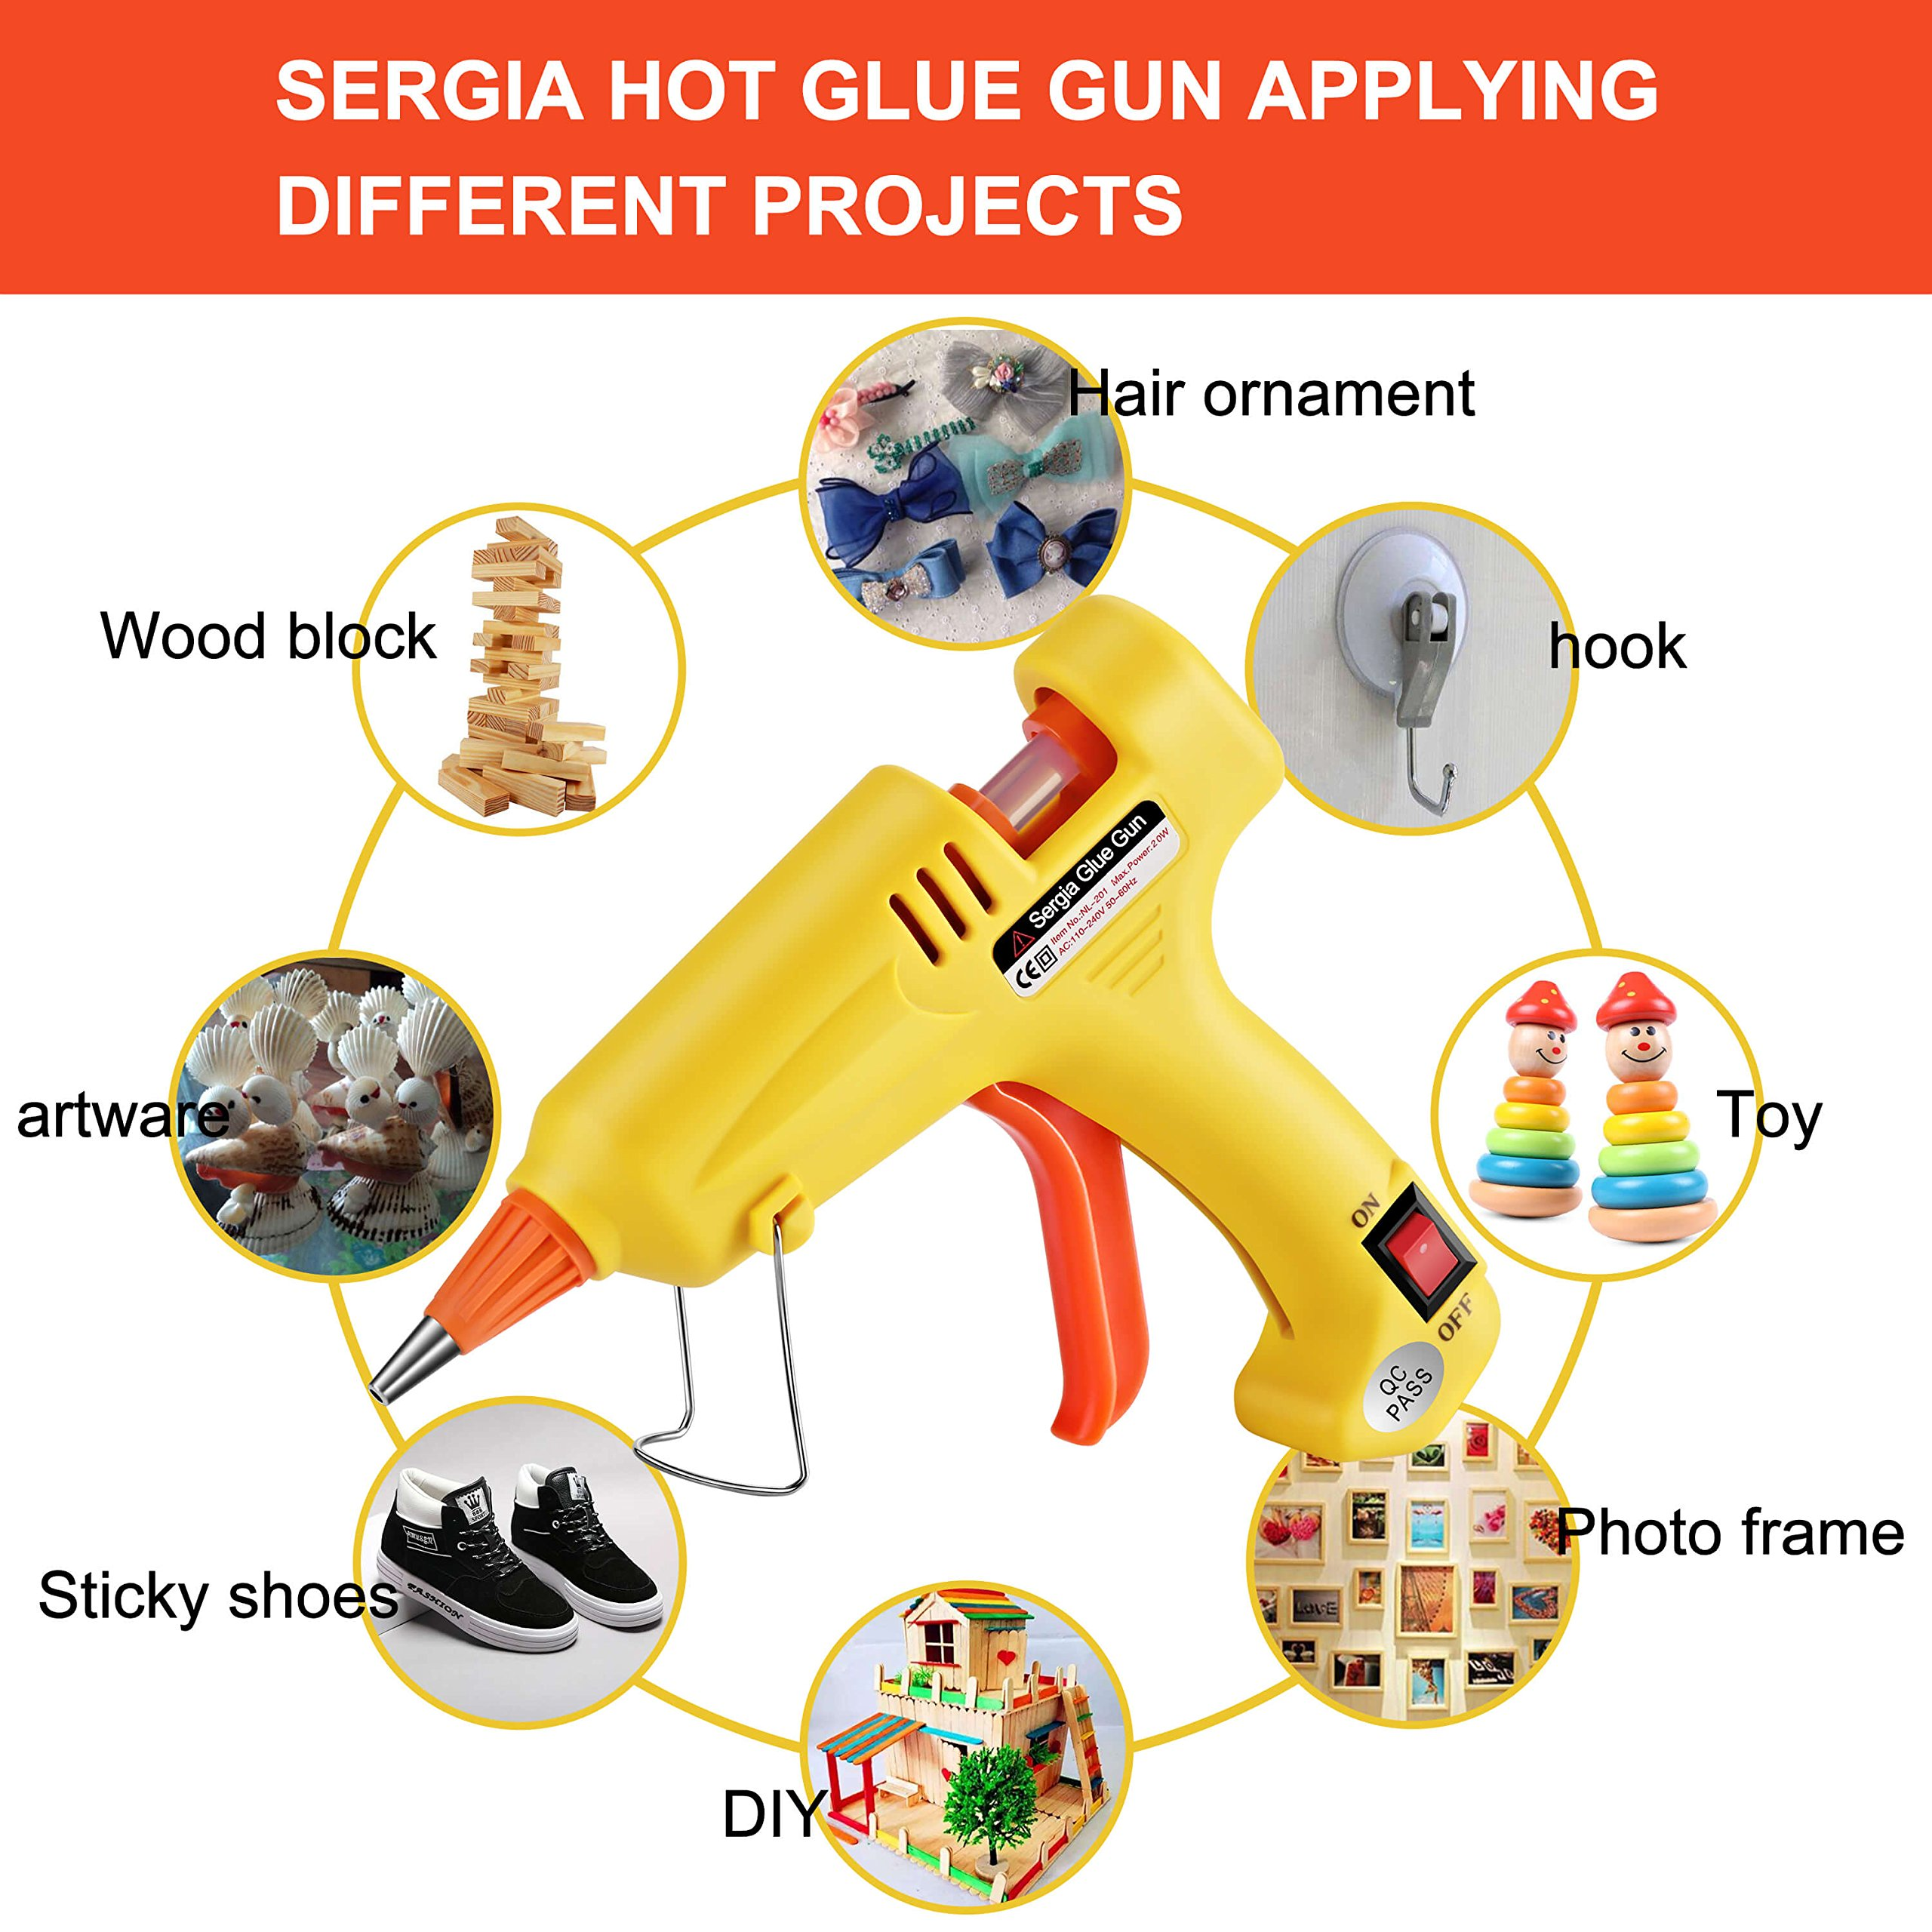 Hot Glue Gun Kit with 20 Pcs Glue Sticks, Mouse Pad, Anti-Hot Cover,Portable case for DIY Small Projects, Craft and Arts & Home Or School Quick Repair Sealing Use, Christmas Decoration/Gift (20 Watt) by SERGIA (Image #6)